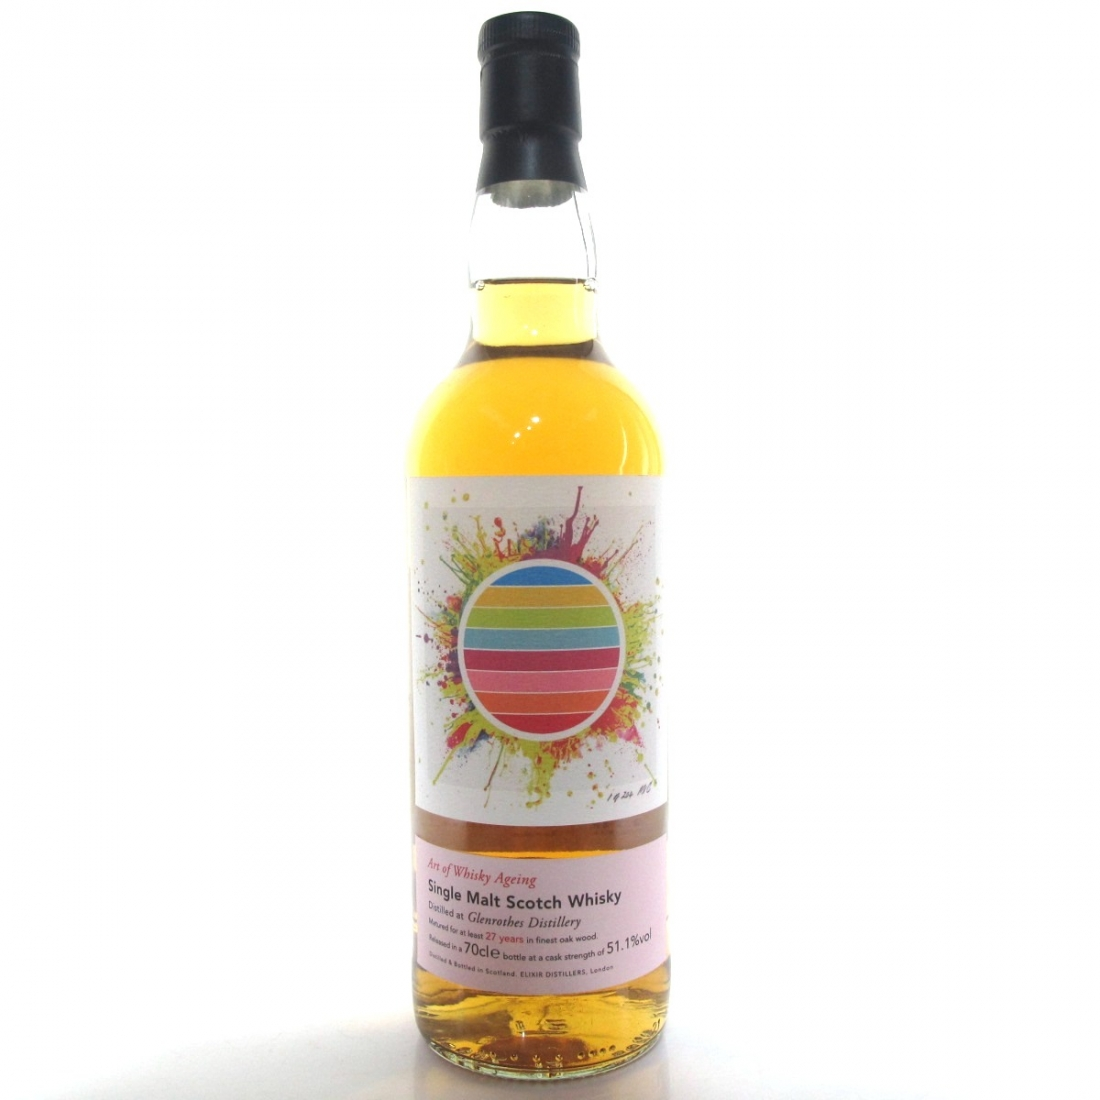 Glenrothes Elixir Distillers 27 Year Old / Art of Whisky